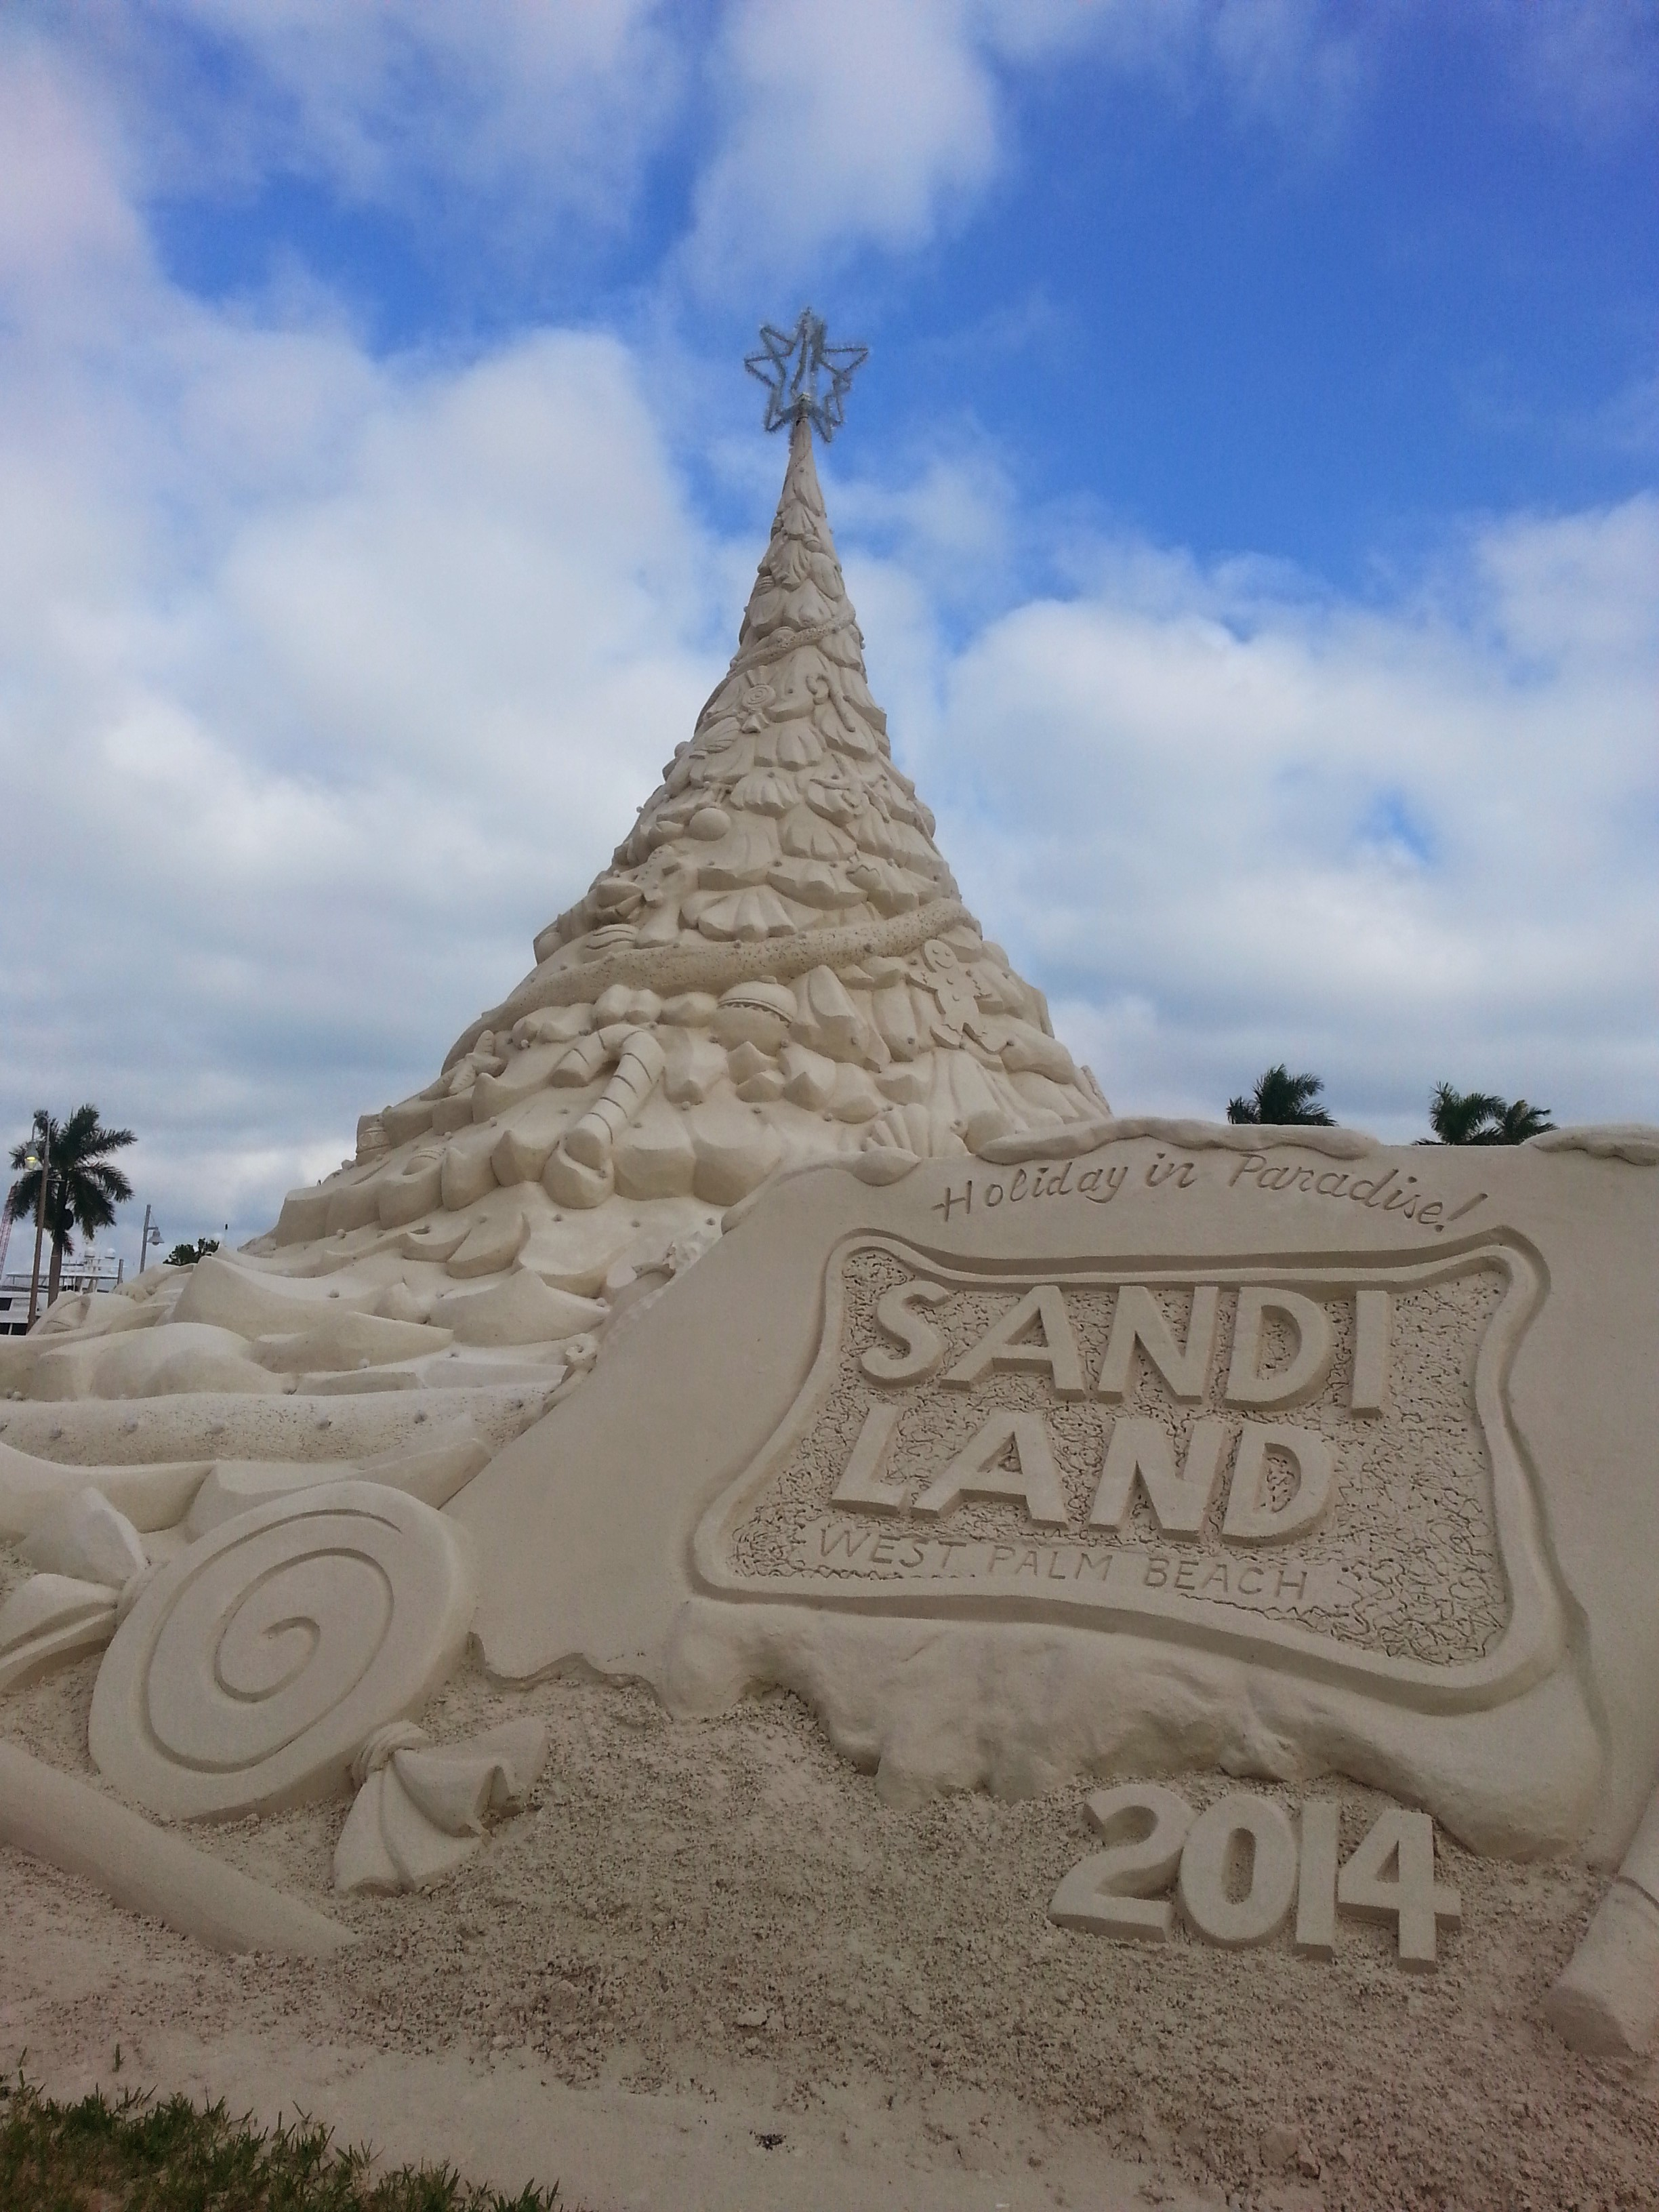 Sandi Land West Palm Beach